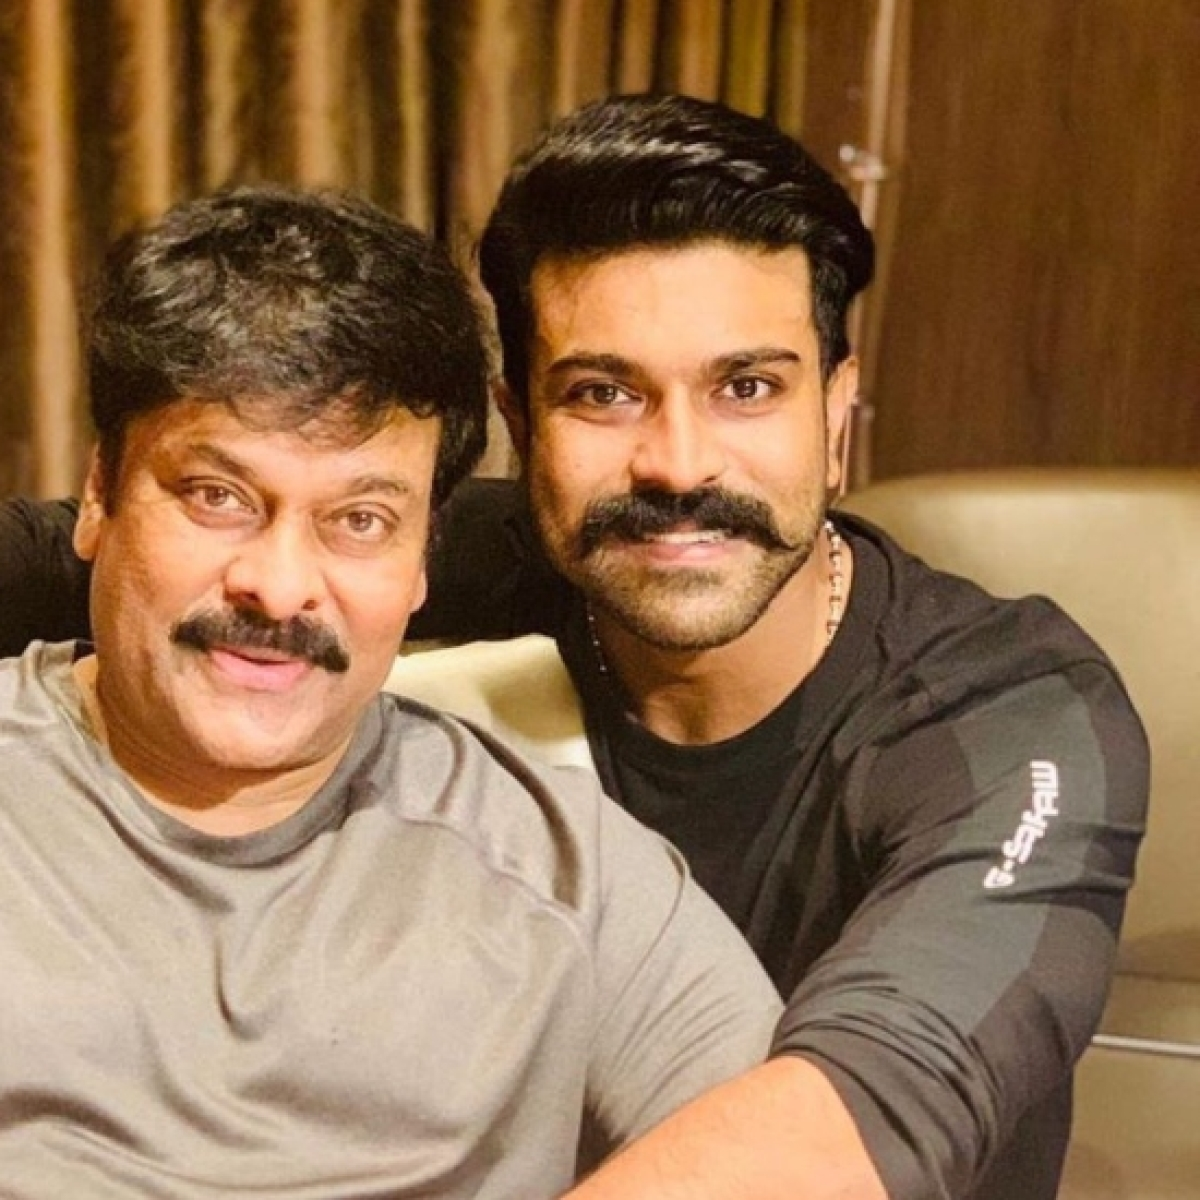 #9Baje9Minute: Chiranjeevi, Ram Charan and Nagarjuna urge people to light lamps after PM Modi's appeal